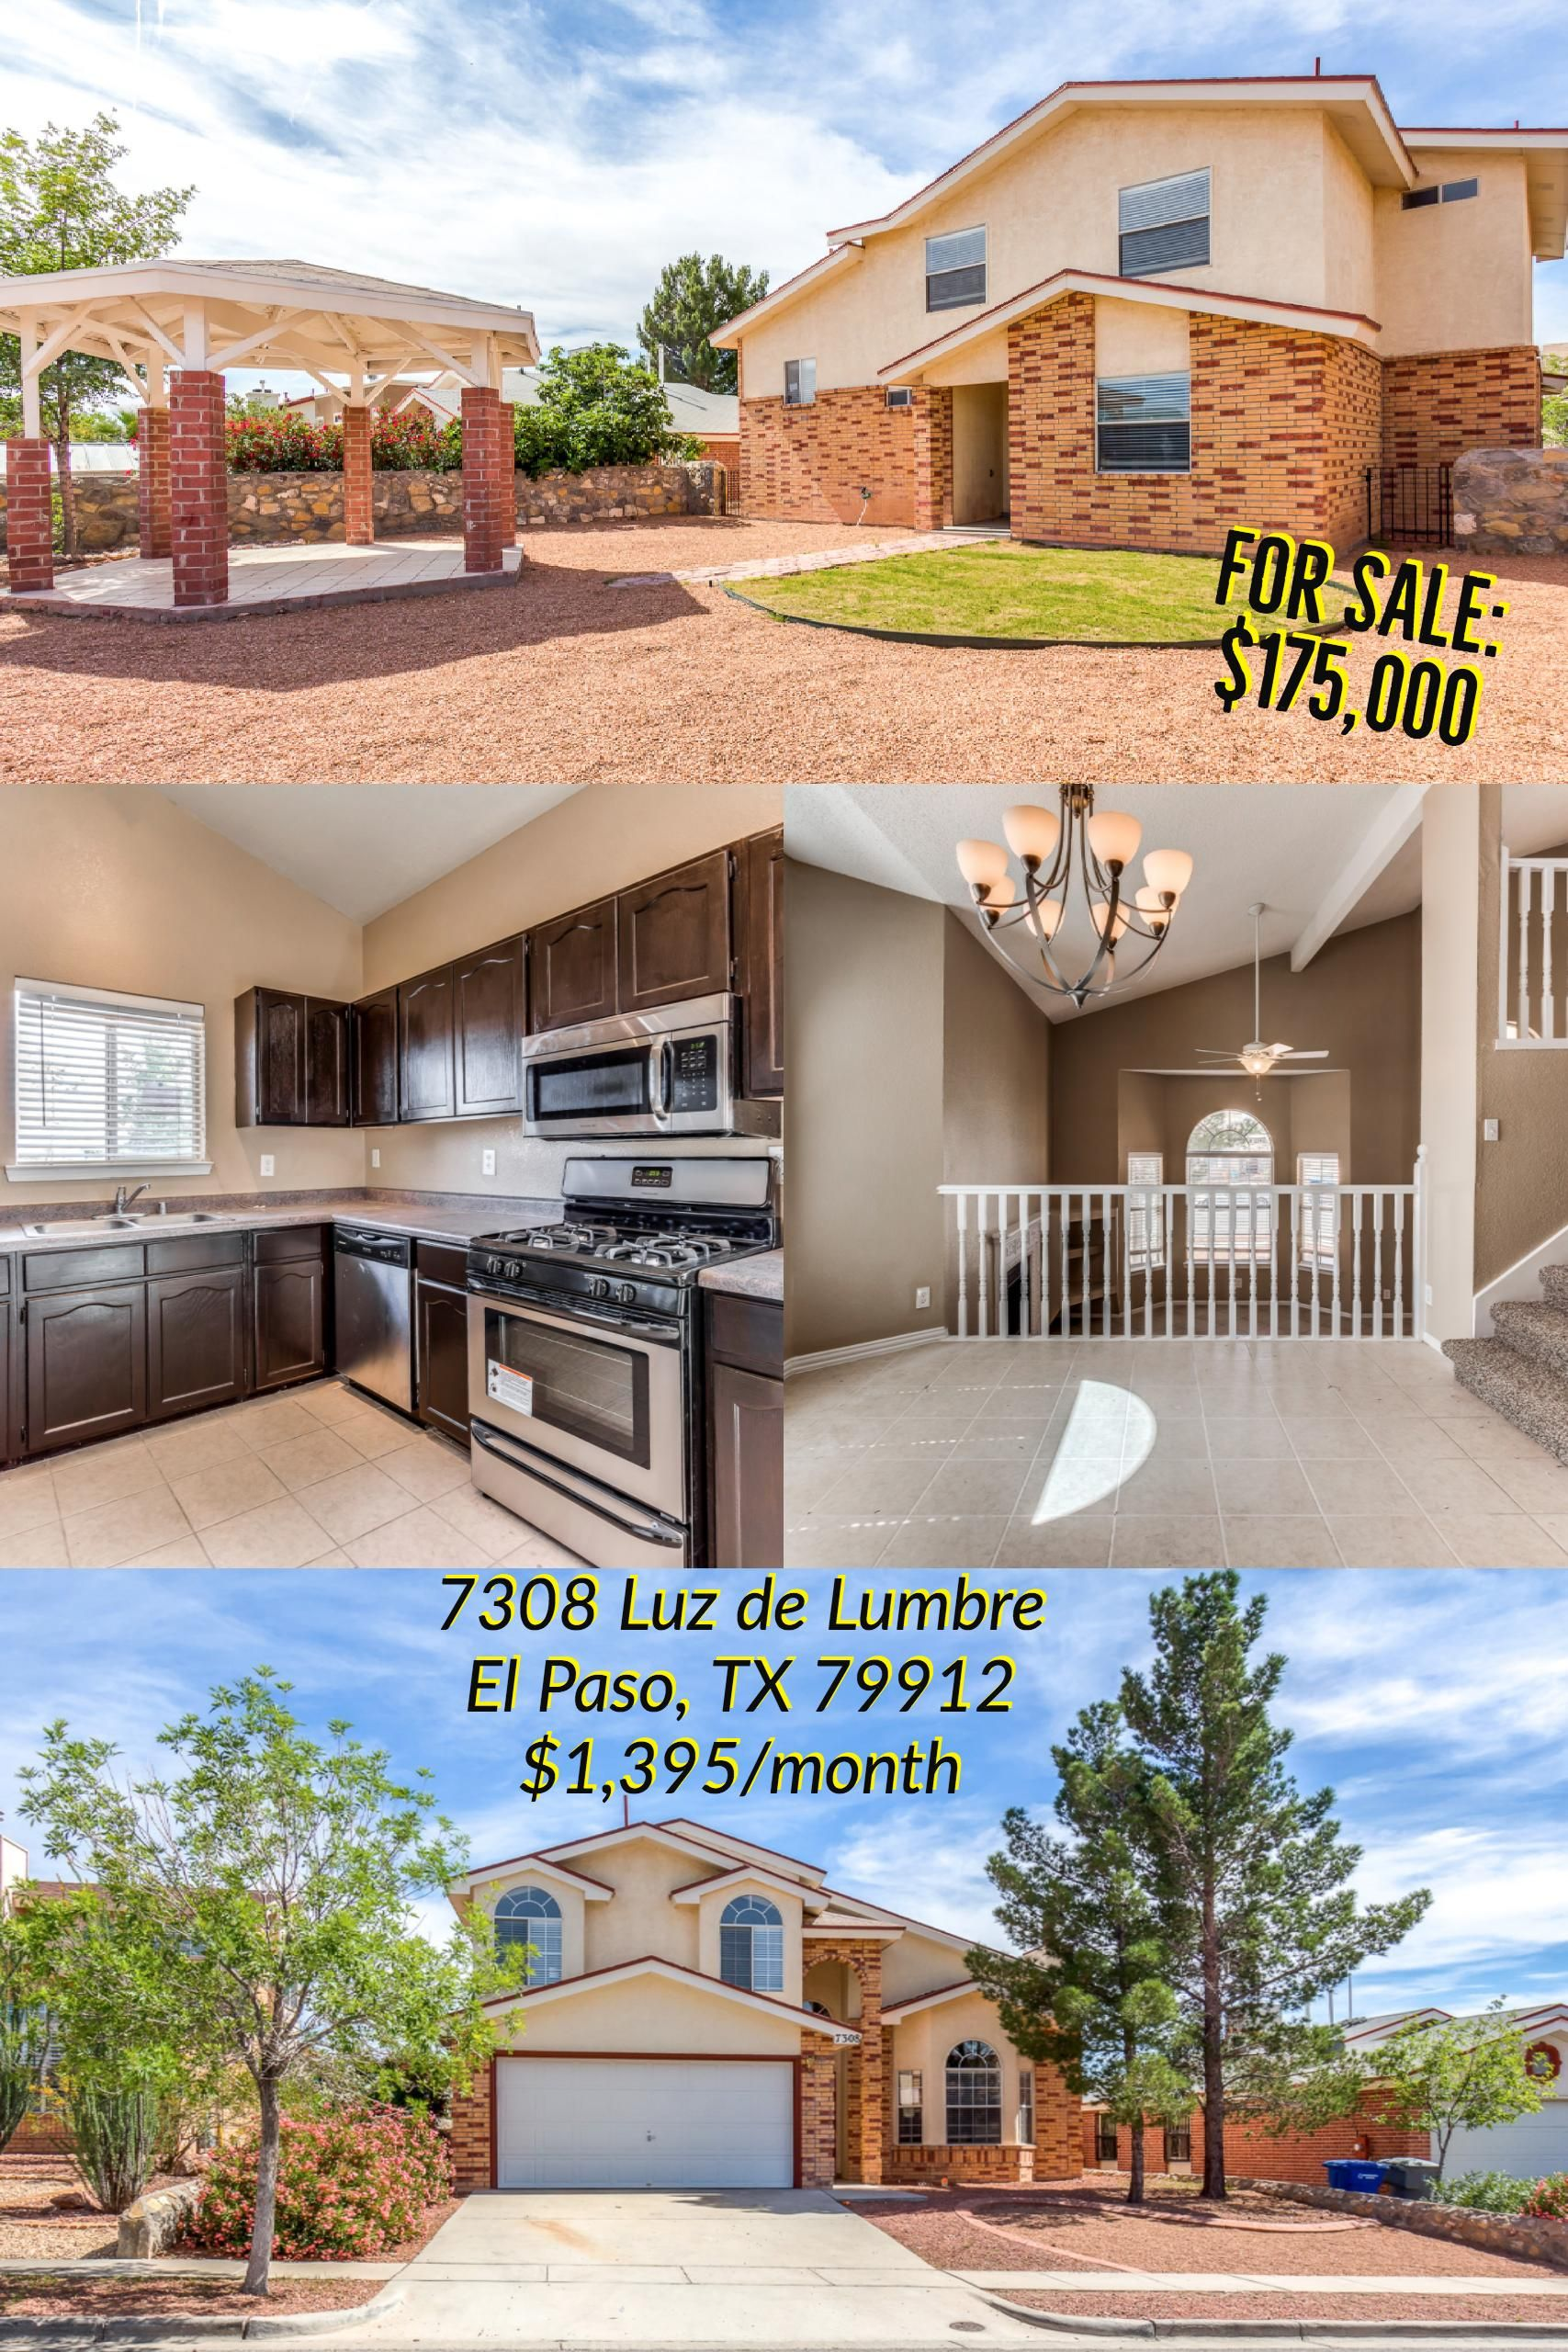 Home For Rent Lease W Option To Purchase And For Sale Divine Multi Level Westside Home With Gazebo Elpaso Elpa Renting A House Bachelor Pad House Styles